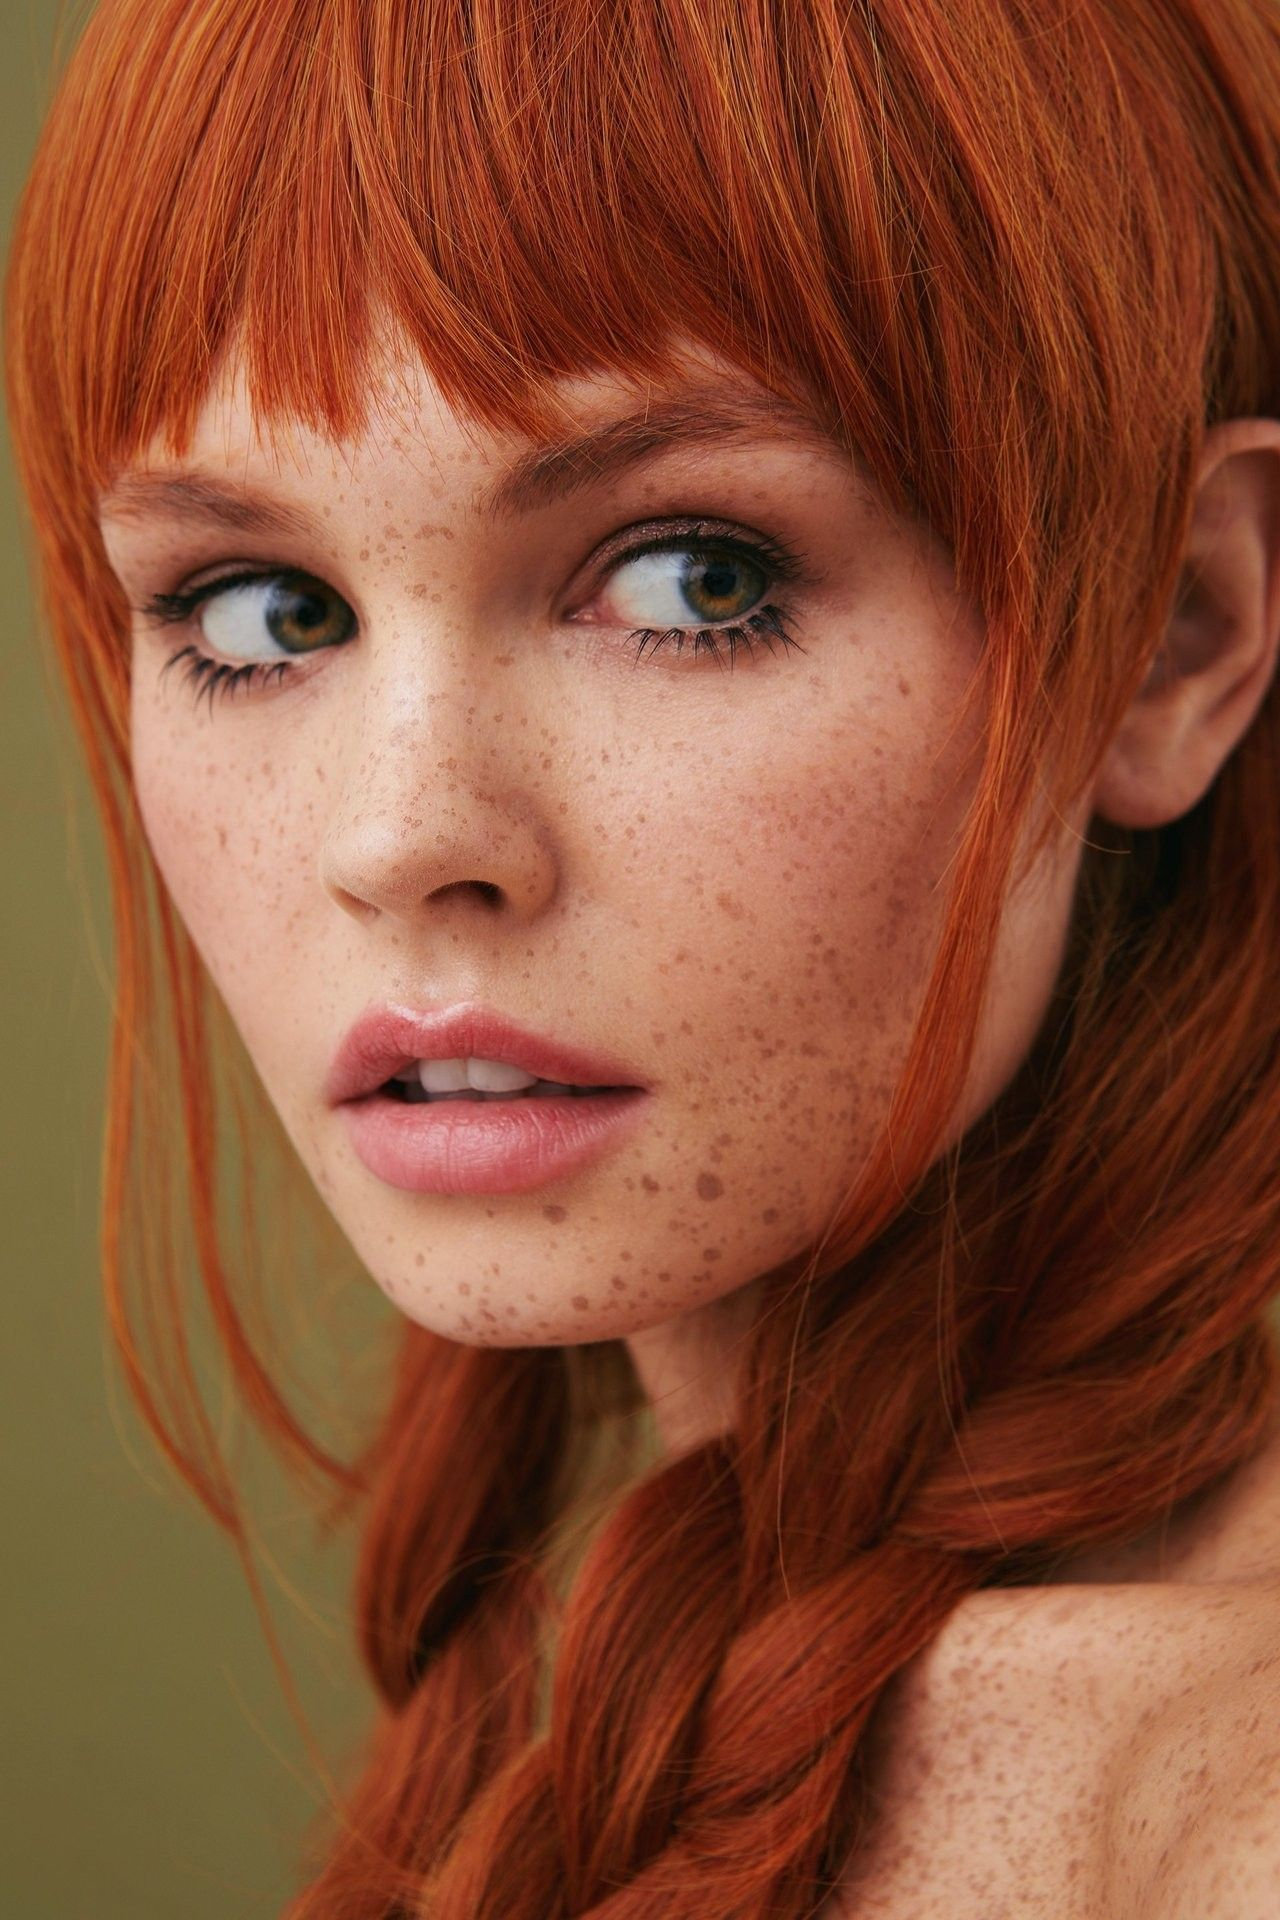 Pin by Wes on Photography portraits Red haired beauty